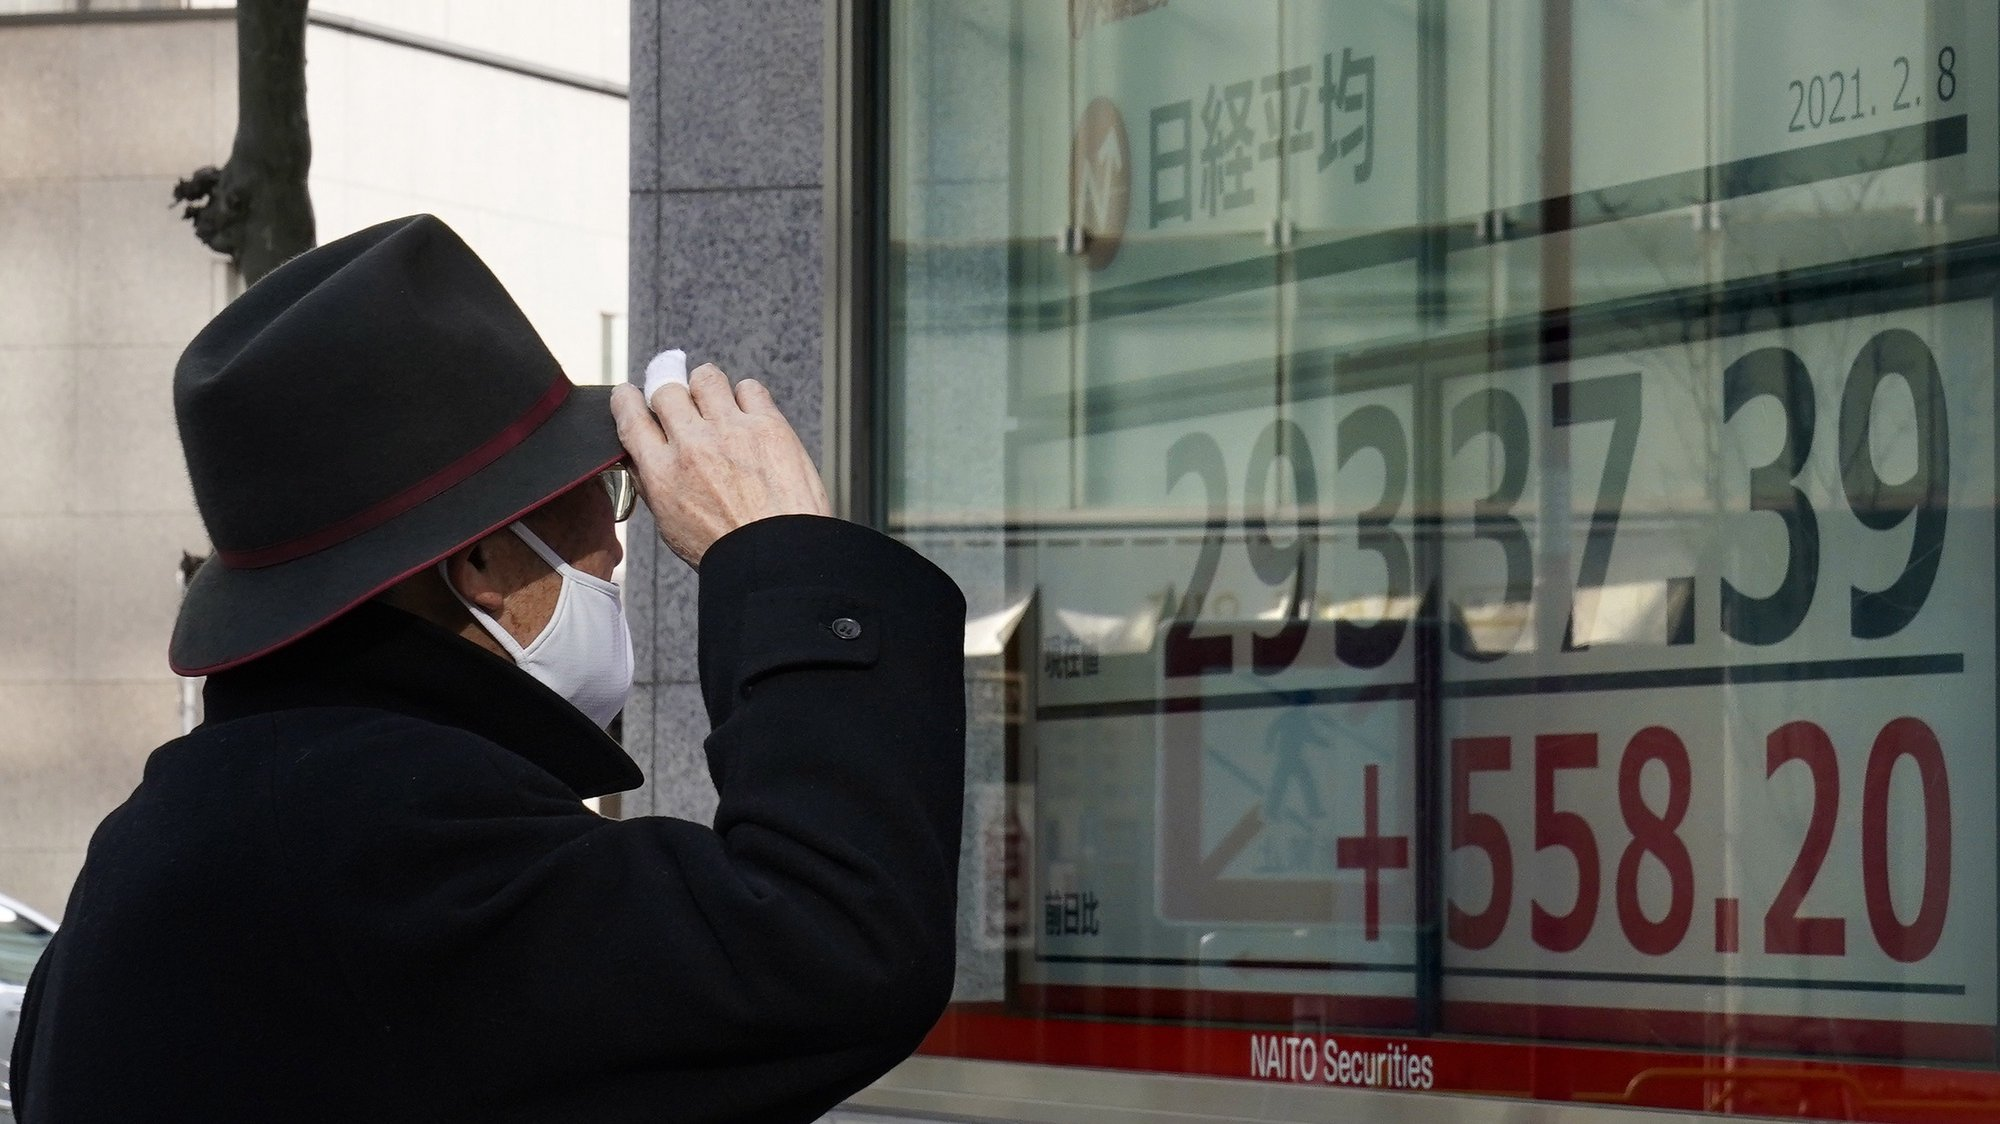 epa08995552 A pedestrian looks at a display showing Nikkei Stock Average during the afternoon trading session in Tokyo, Japan, 08 February 2021. Tokyo stocks climbed over 29,000 level for the first time in more than 30 years. The benchmark Nikkei Stock Average surged 609.31 points, or 2.12 per cent, to close at 29,388.50 on hope that US government may implement a new economic package for a breakthrough against the new coronavirus pandemic.  EPA/KIMIMASA MAYAMA